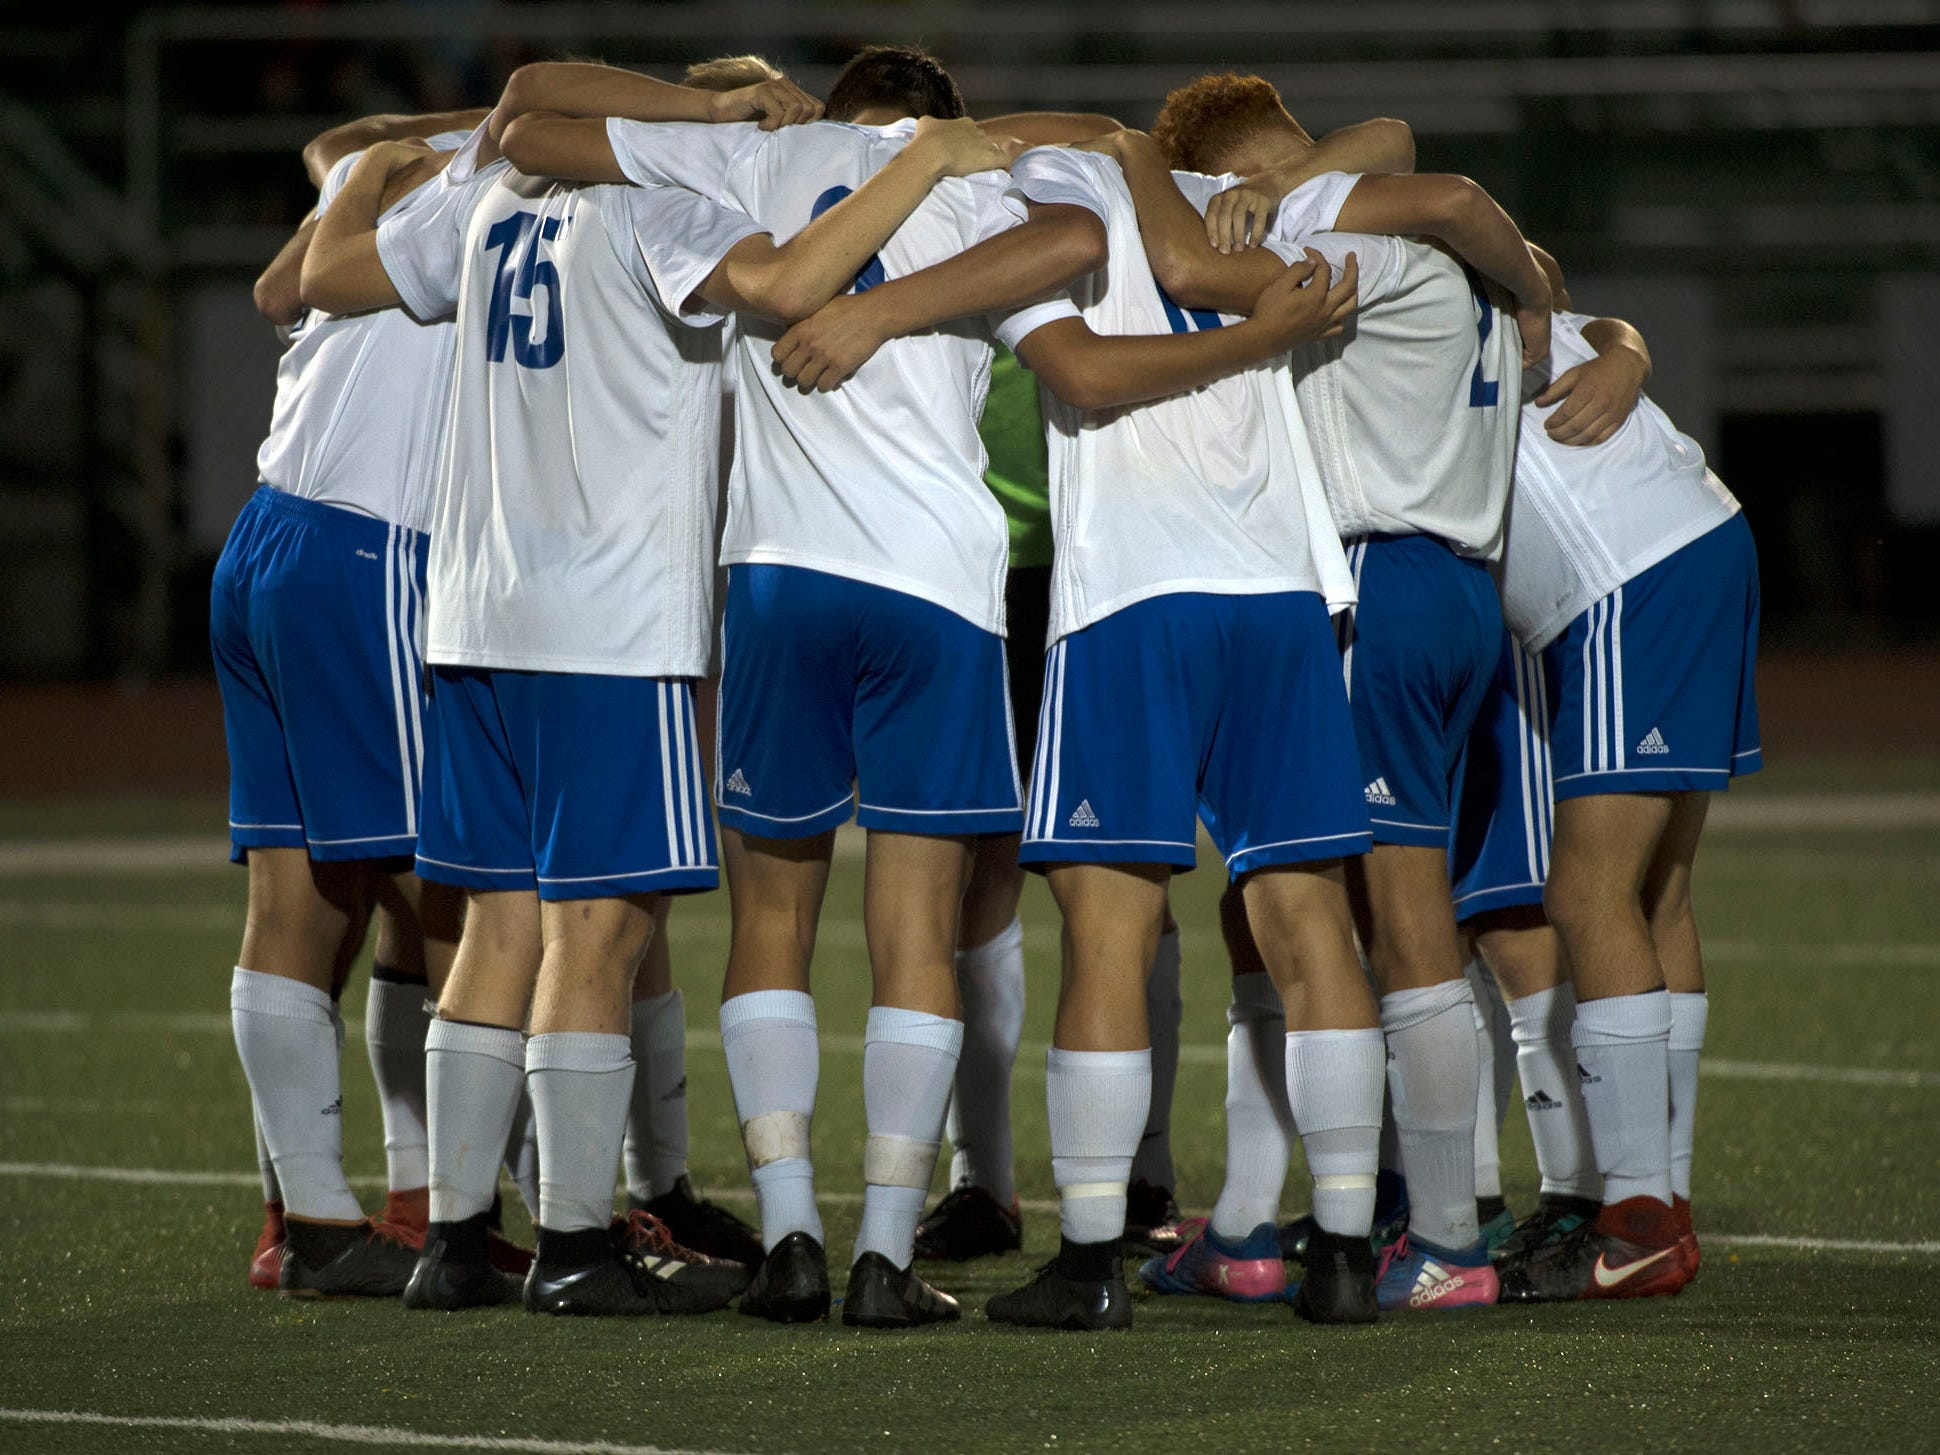 Waynesboro players huddle before taking on Greencastle. Waynesboro shocked Greencastle with a 4-0 shutout in PIAA Mid-Colonial soccer on Tuesday, Oct. 9, 2018.